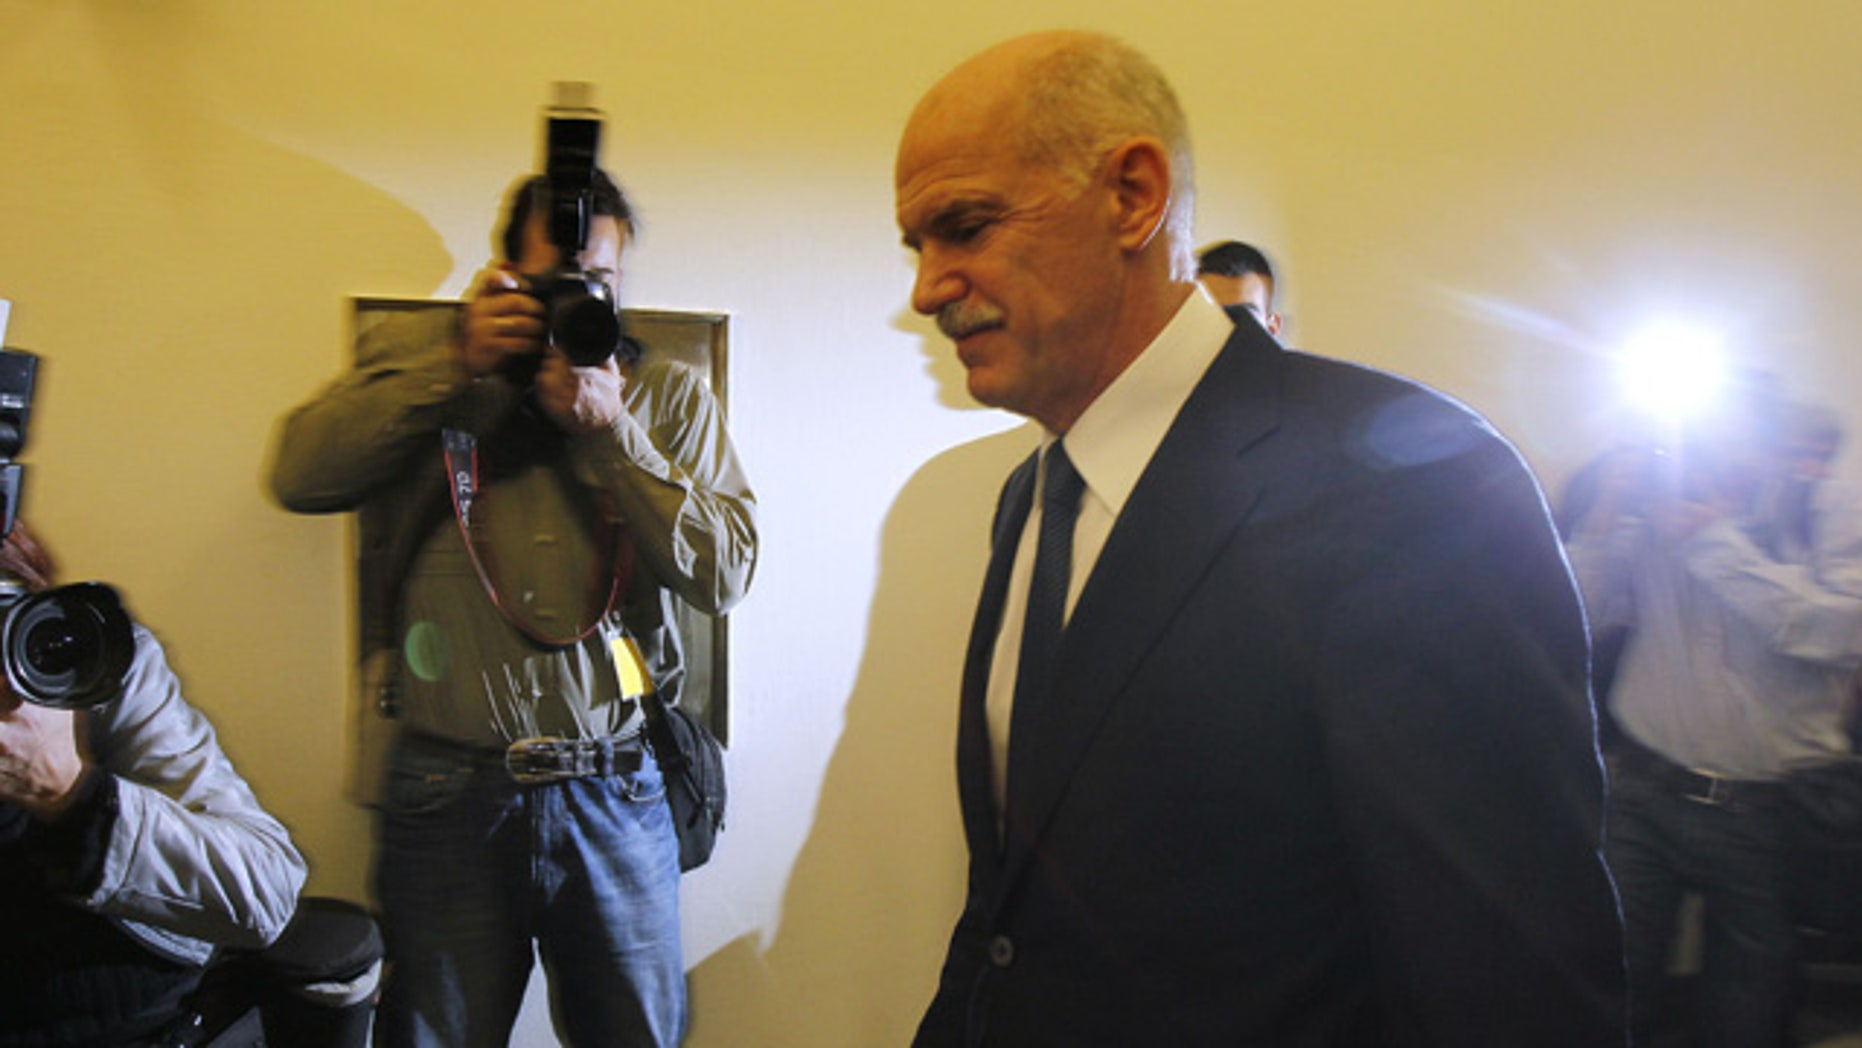 Greek Prime Minister George Papandreou returns to an emergency cabinet meeting after he took a short break at the Greek parliament in Athens, on Thursday, Nov. 3, 2011. A spokesman for Greece's government says it is prepared to discuss an opposition demand for the creation of a transitional government to approve the latest European bailout deal and secure the next installment of rescue loans for the country. (AP Photo/Thanassis Stavrakis)